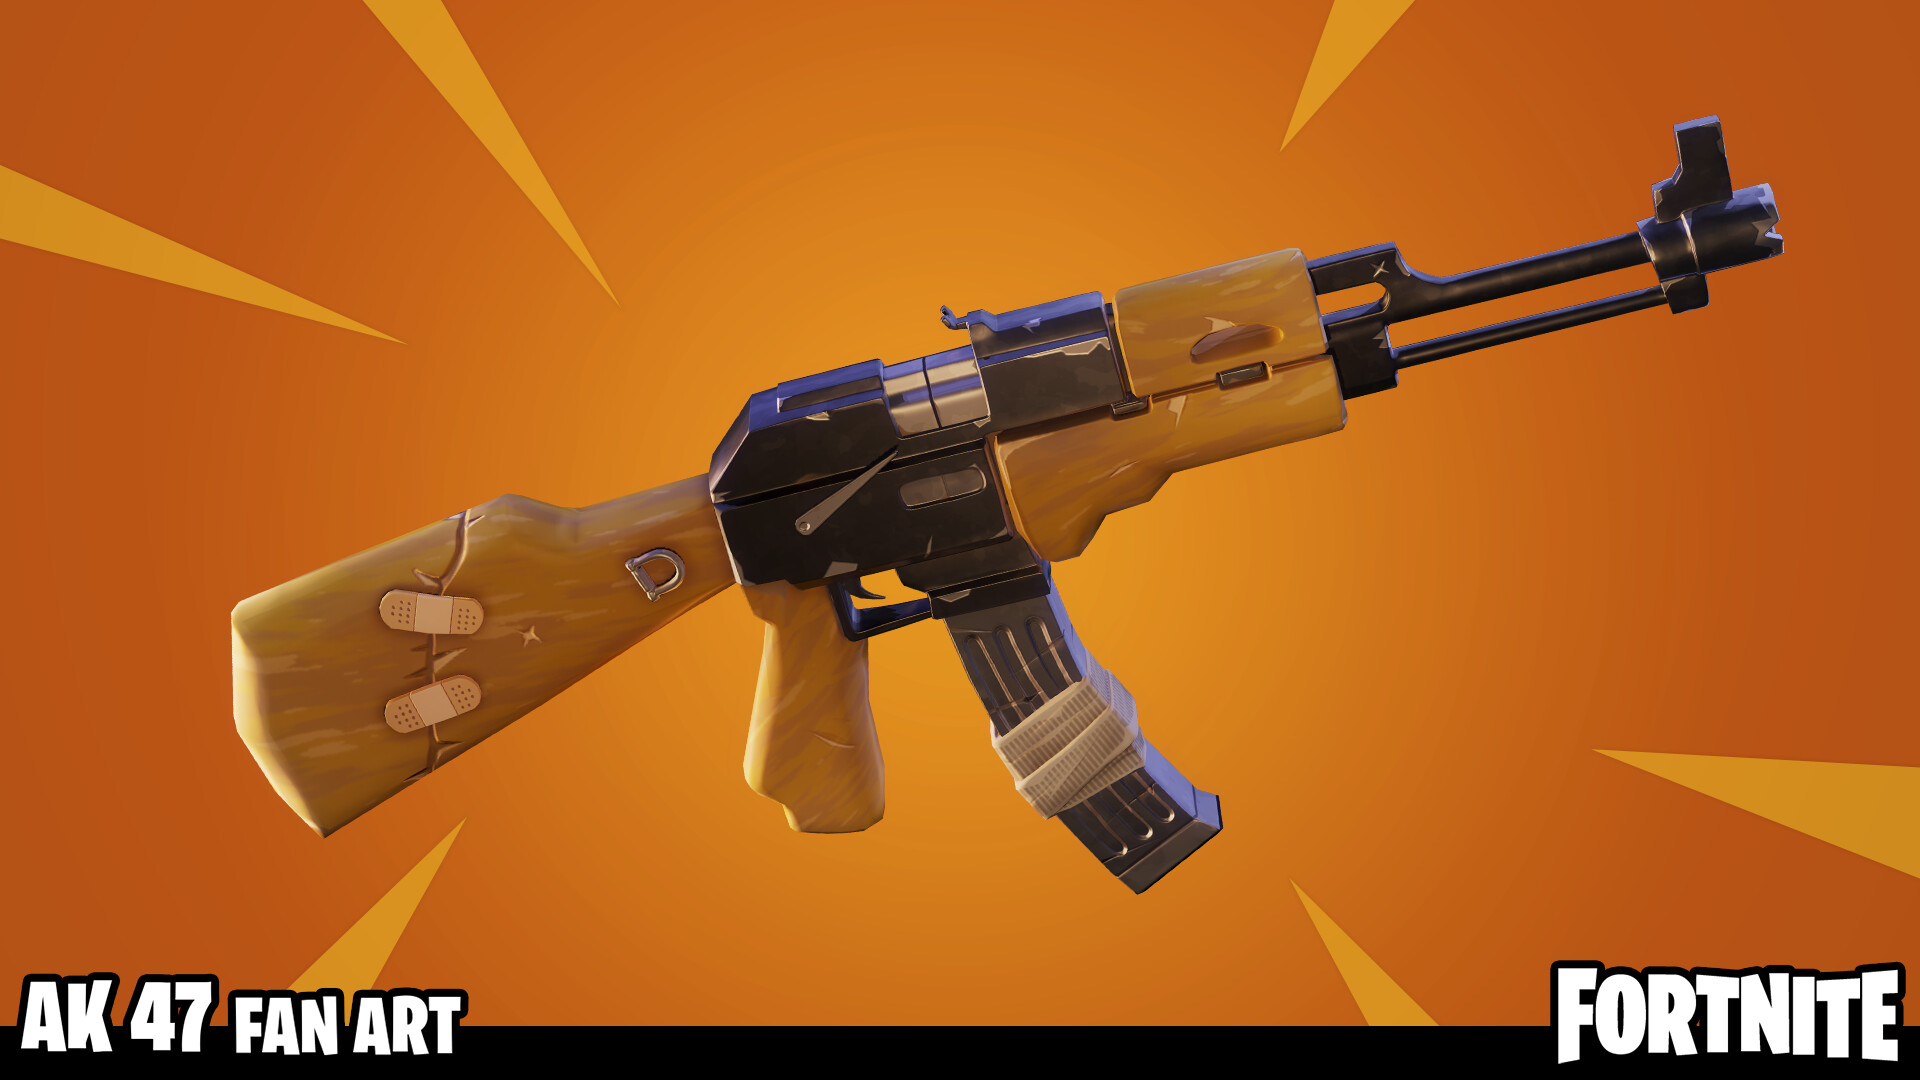 How To Get The New Ak In Fortnite Lootboy Code Fortnite Lootboy Codes Fortnite Fortnite Tracker Replays How To Draw Fortnite Raven Skin Step By Step Meridethy Hovel